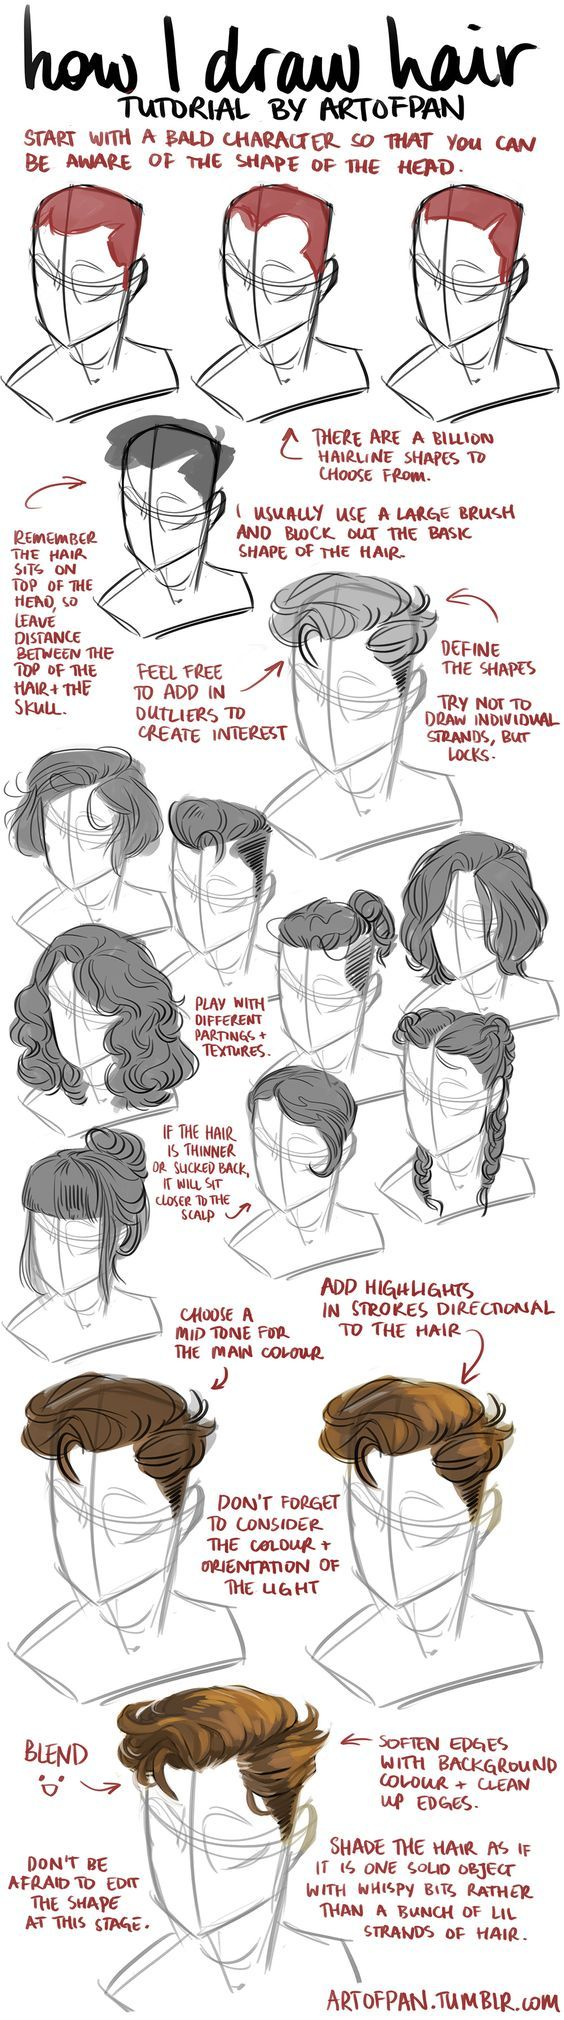 How to draw/sketch human hair on the human head with realistic proportions and positioning.